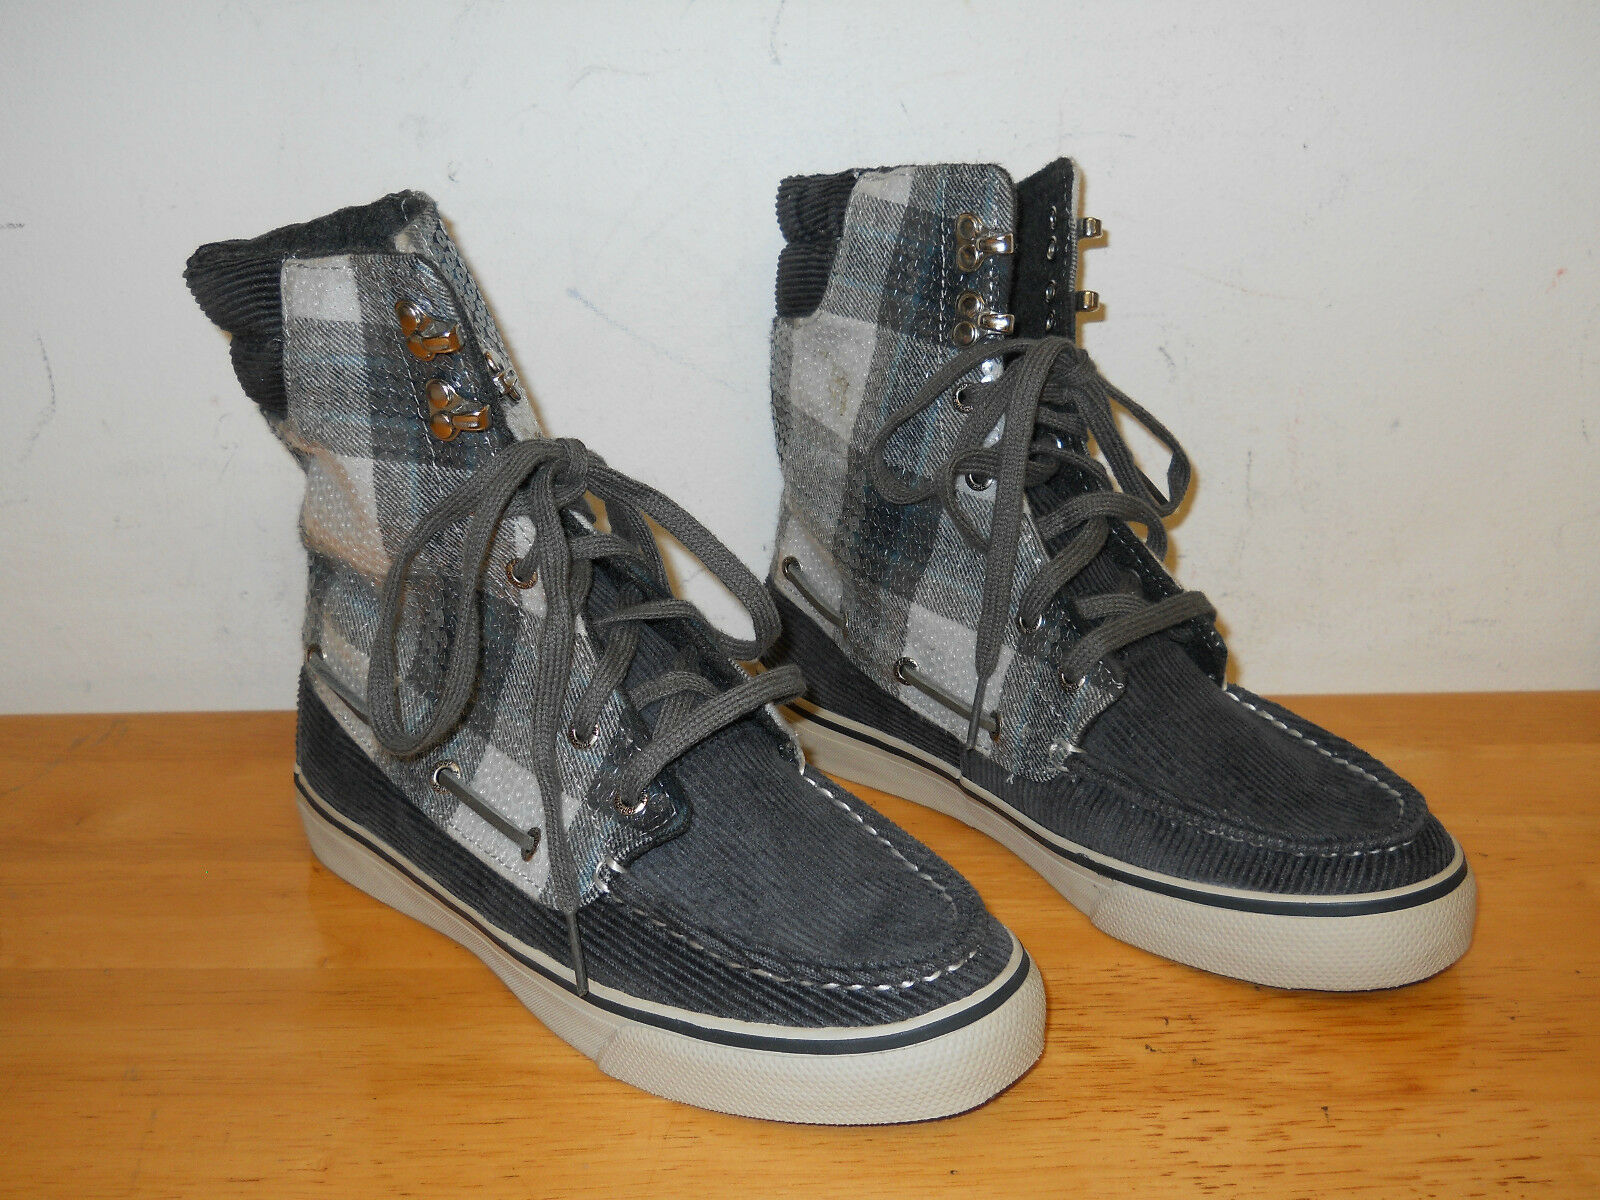 Sperry Top Sider New Femme Acklins Hi Top Sneakers 6 M Chaussures NWOB